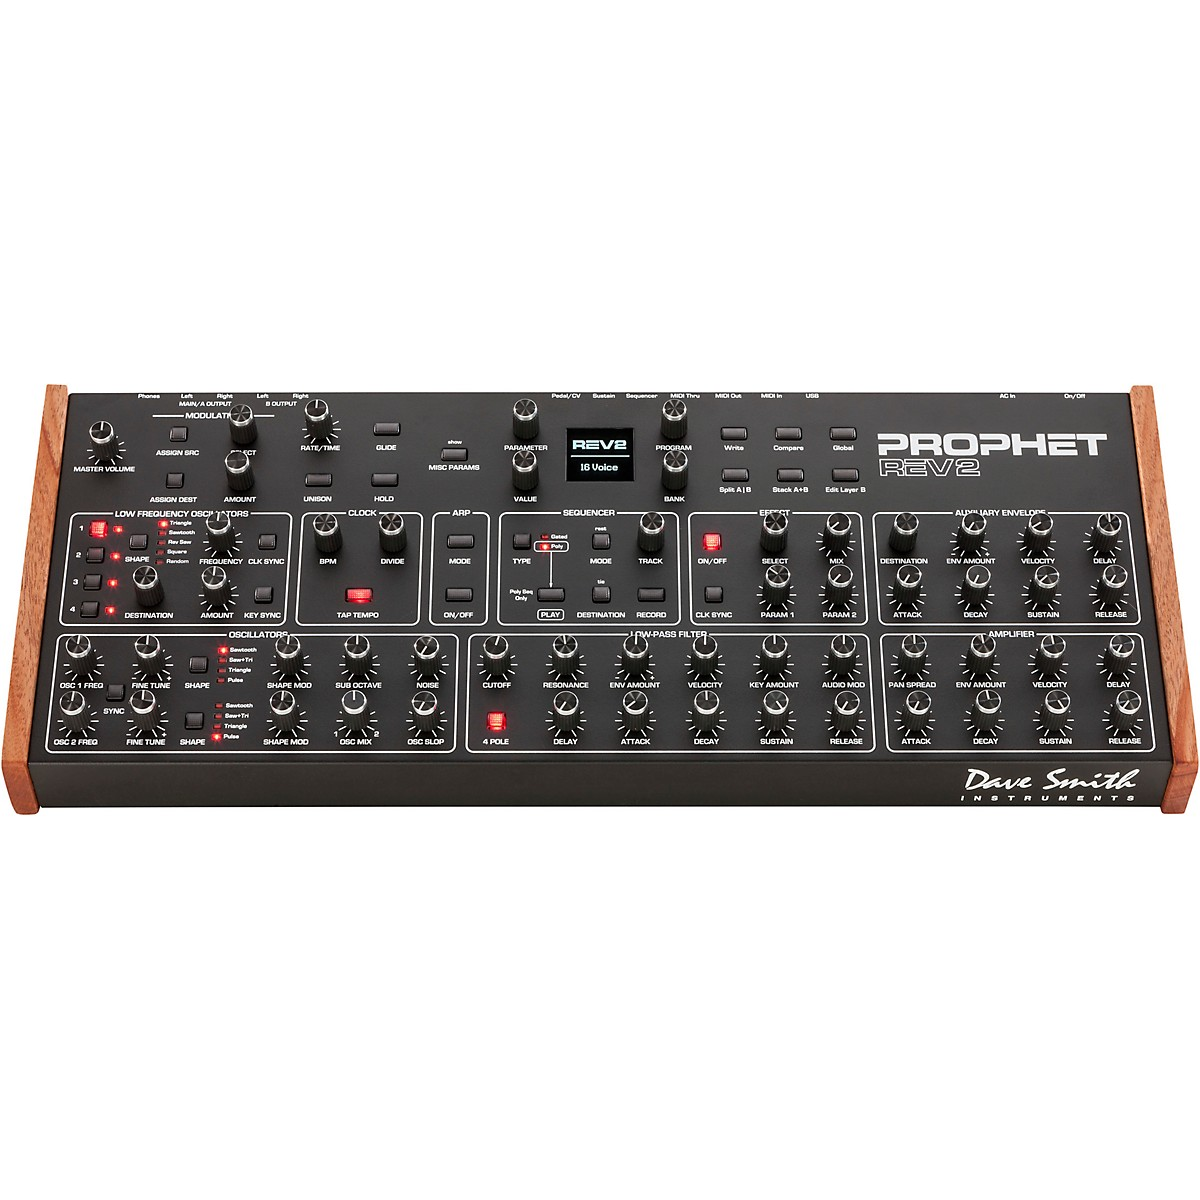 Sequential Prophet Rev2 Synthesizer Module